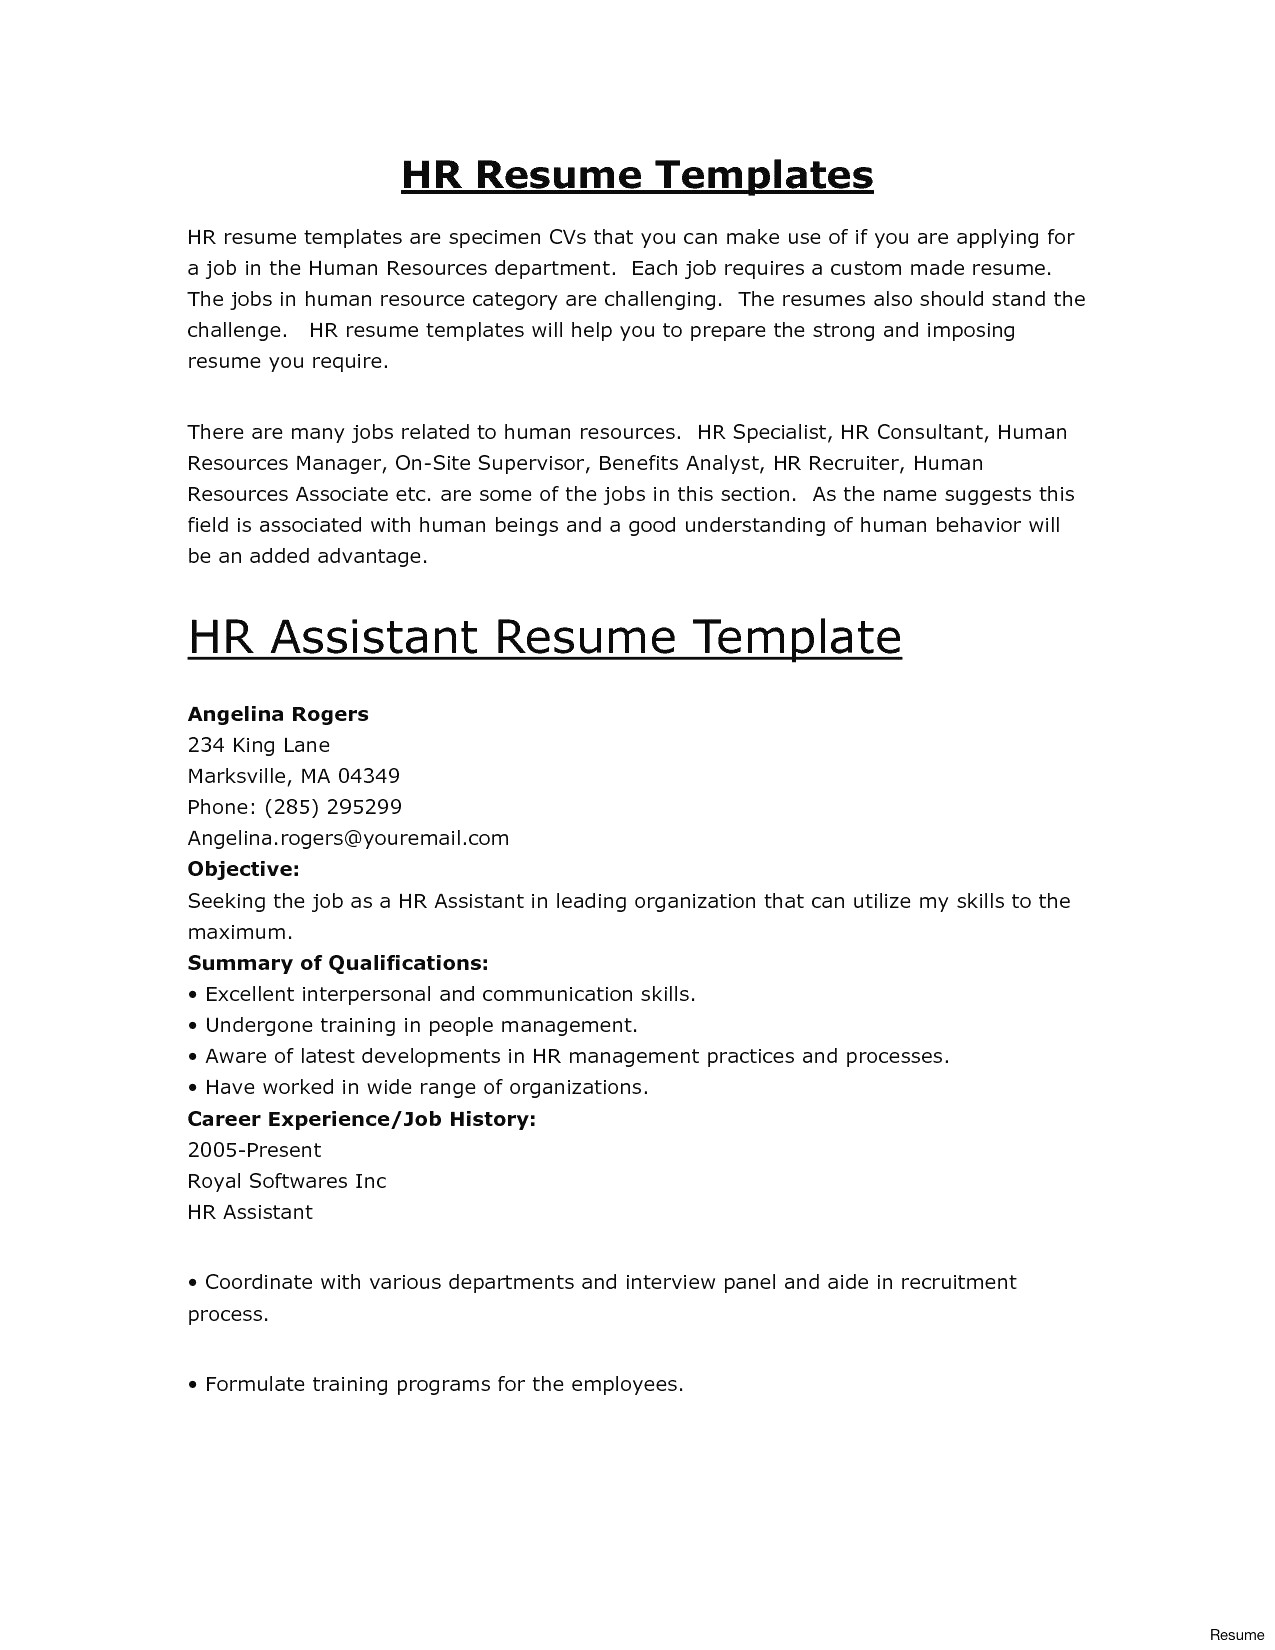 forklift driver resume template example example-resume templates free word inspirational free resume template builder inspirational od specialist sample of resume templates forklift driver 18-k